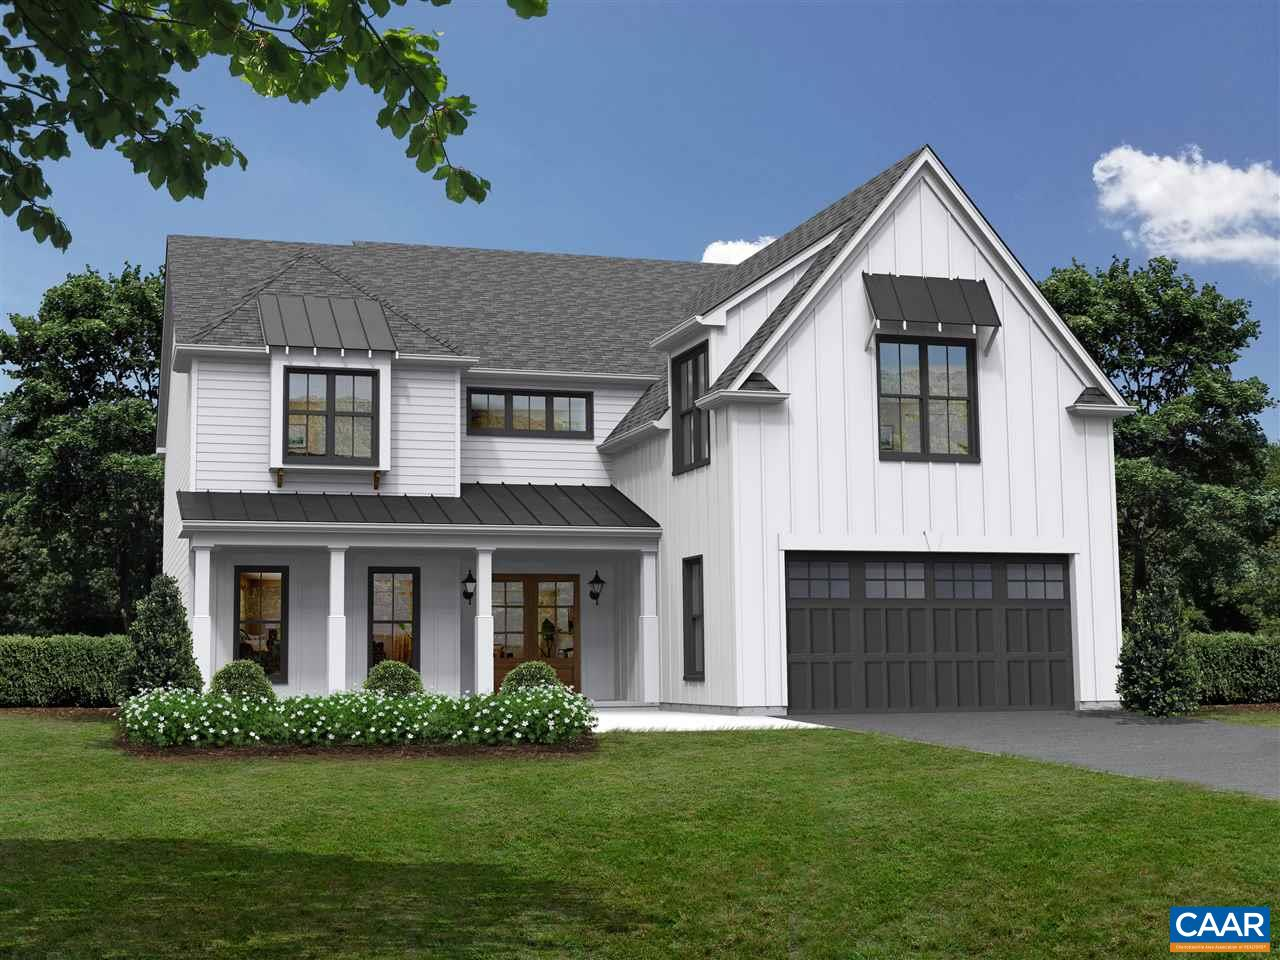 To be built by Craig Builders in Old Trail Village.  Panoramic mountain views overlooking both Old Trail Golf Course and Upper Ballard Pond, this beautiful 1/4 acre homesite is the perfect setting for your newly built home.This craftsman inspired home features 4 bedrooms with en suite bathrooms in addition to a bonus bedroom/rec room.  This brand new home includes many design features desired by today's homeowner such as an oversized garage, walk-in closets, walk-thru shower, large mud room, walk-in pantry, and outdoor patio. Quality built with 2x6 exterior walls along with HERS tested energy efficient building methods.  Model Home available for tour.  Homesite 13 at Old Trail Golf Club will feature an oversized front loading garage.